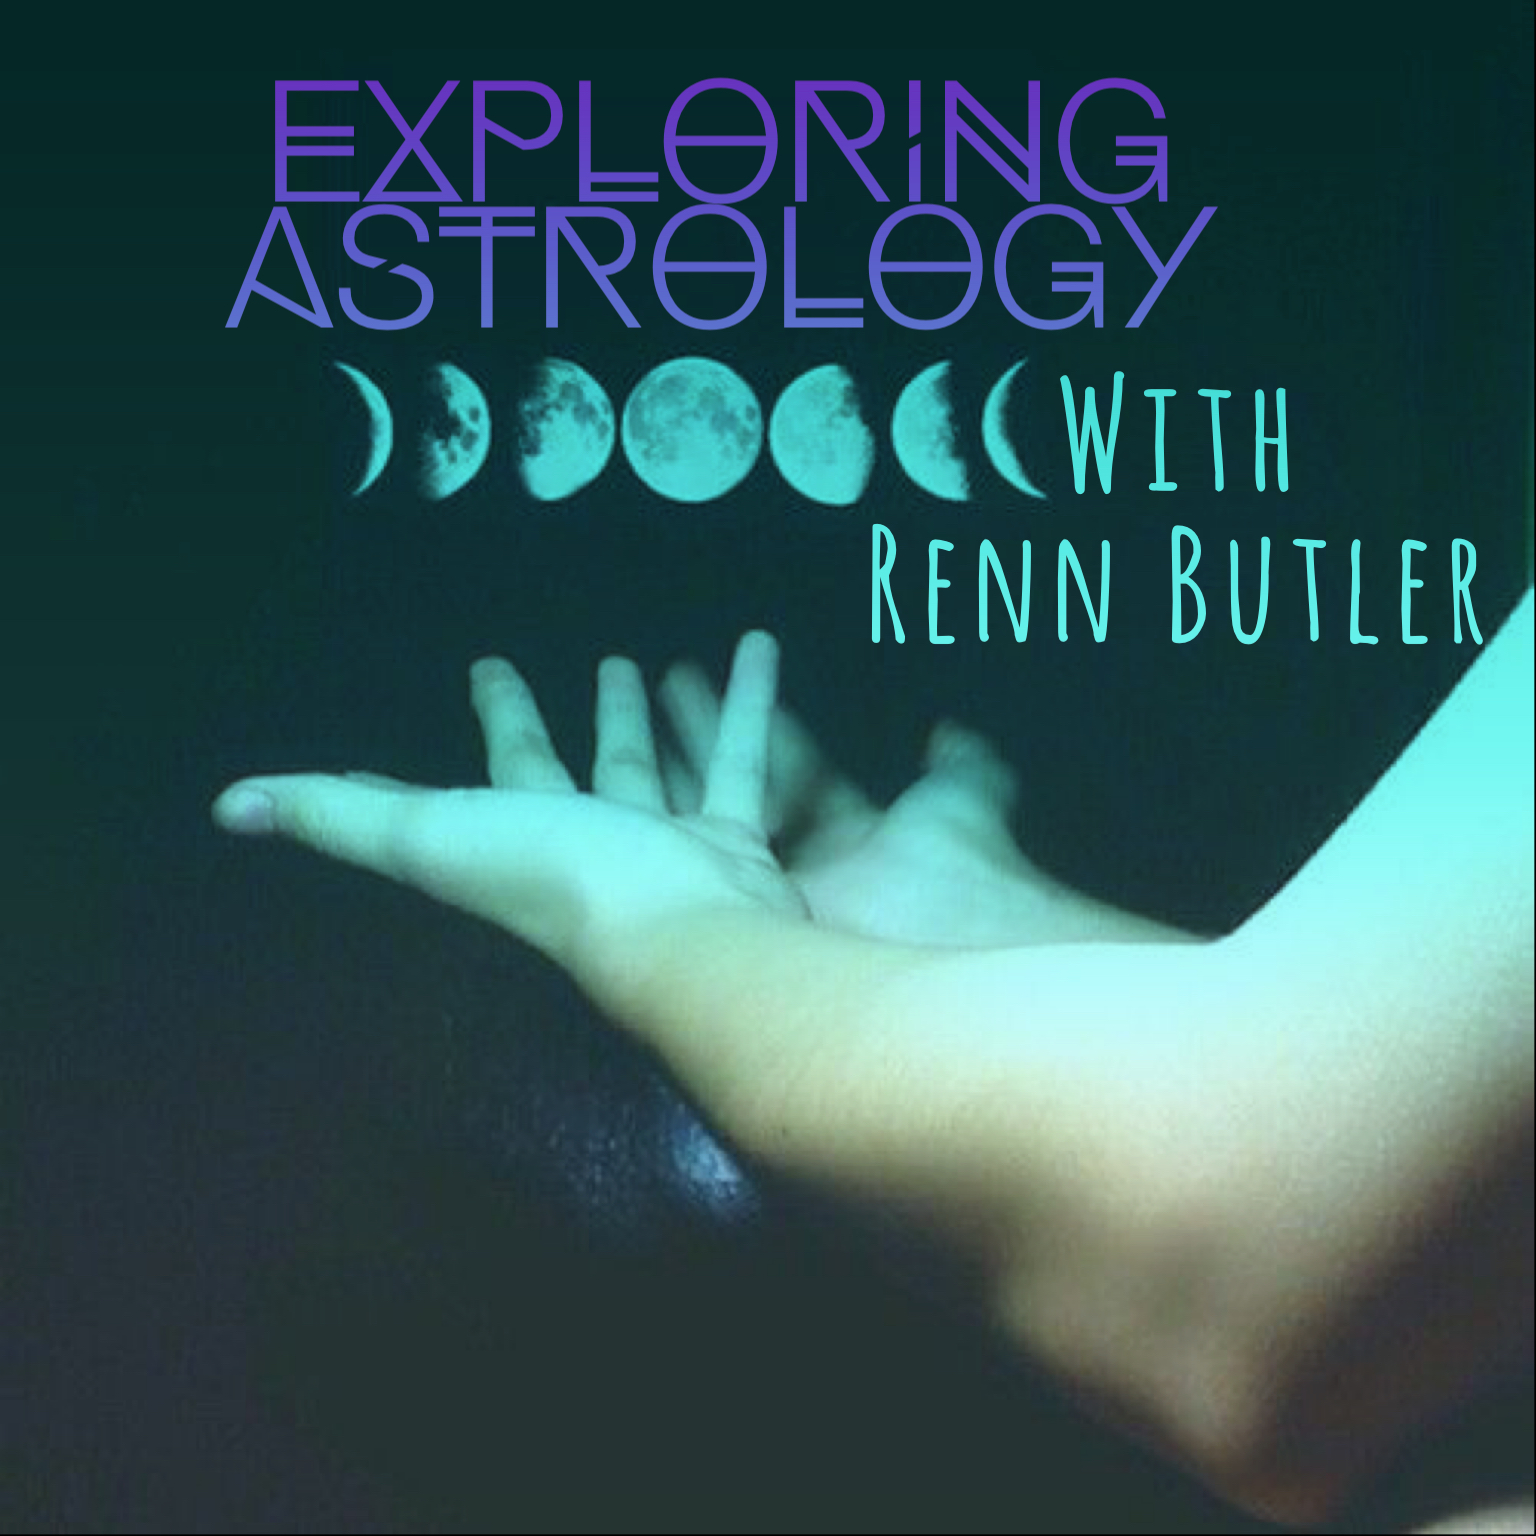 Exploring Astrology with Renn Butler